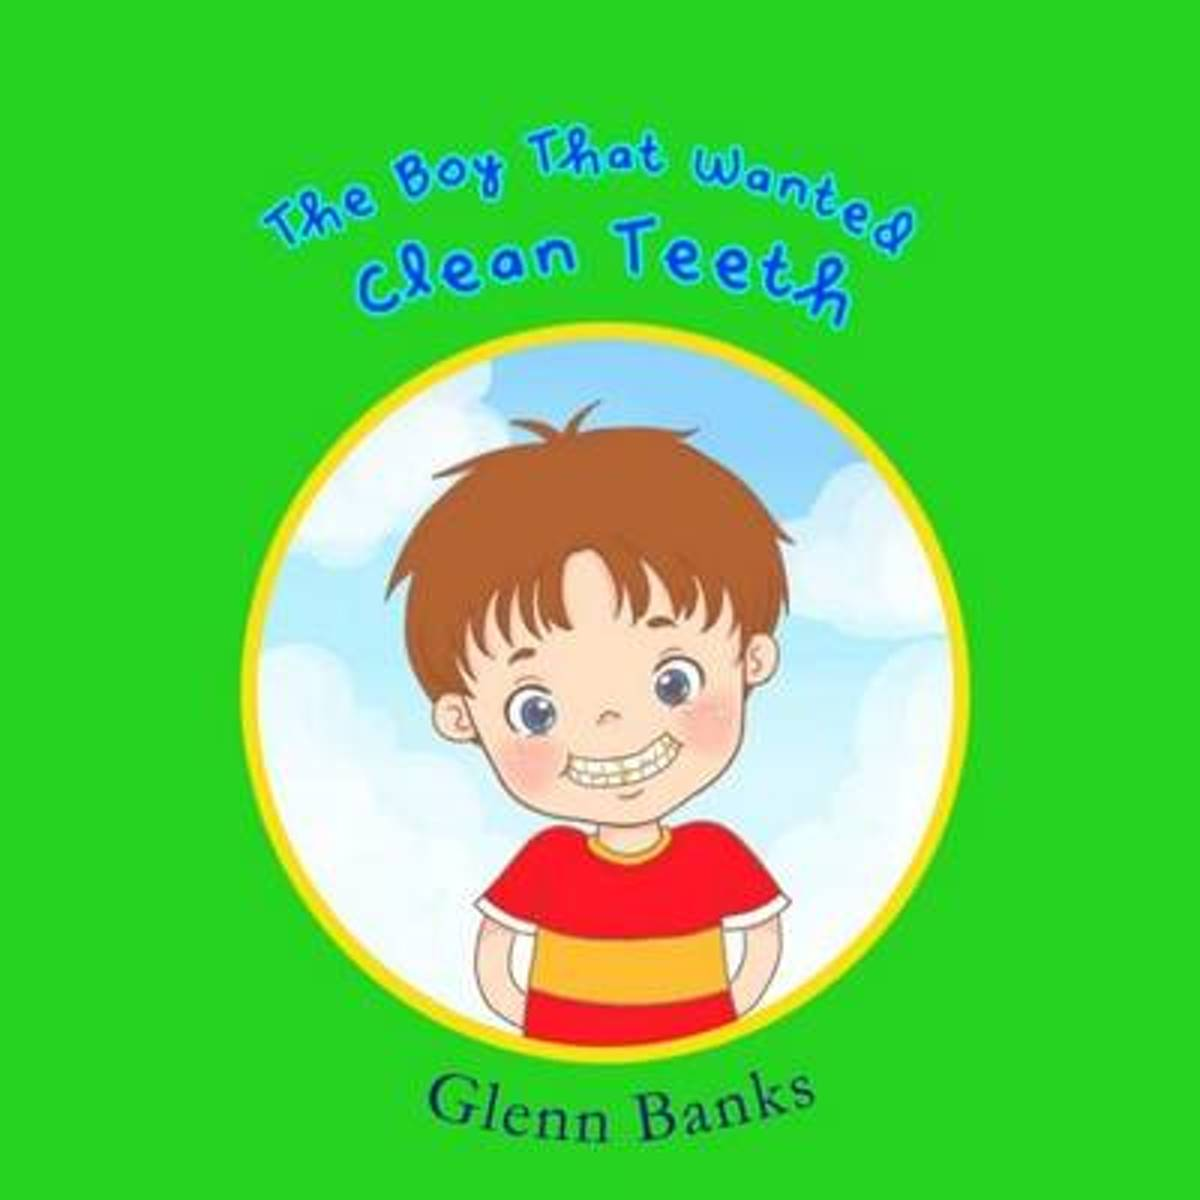 The Boy That Wanted Clean Teeth